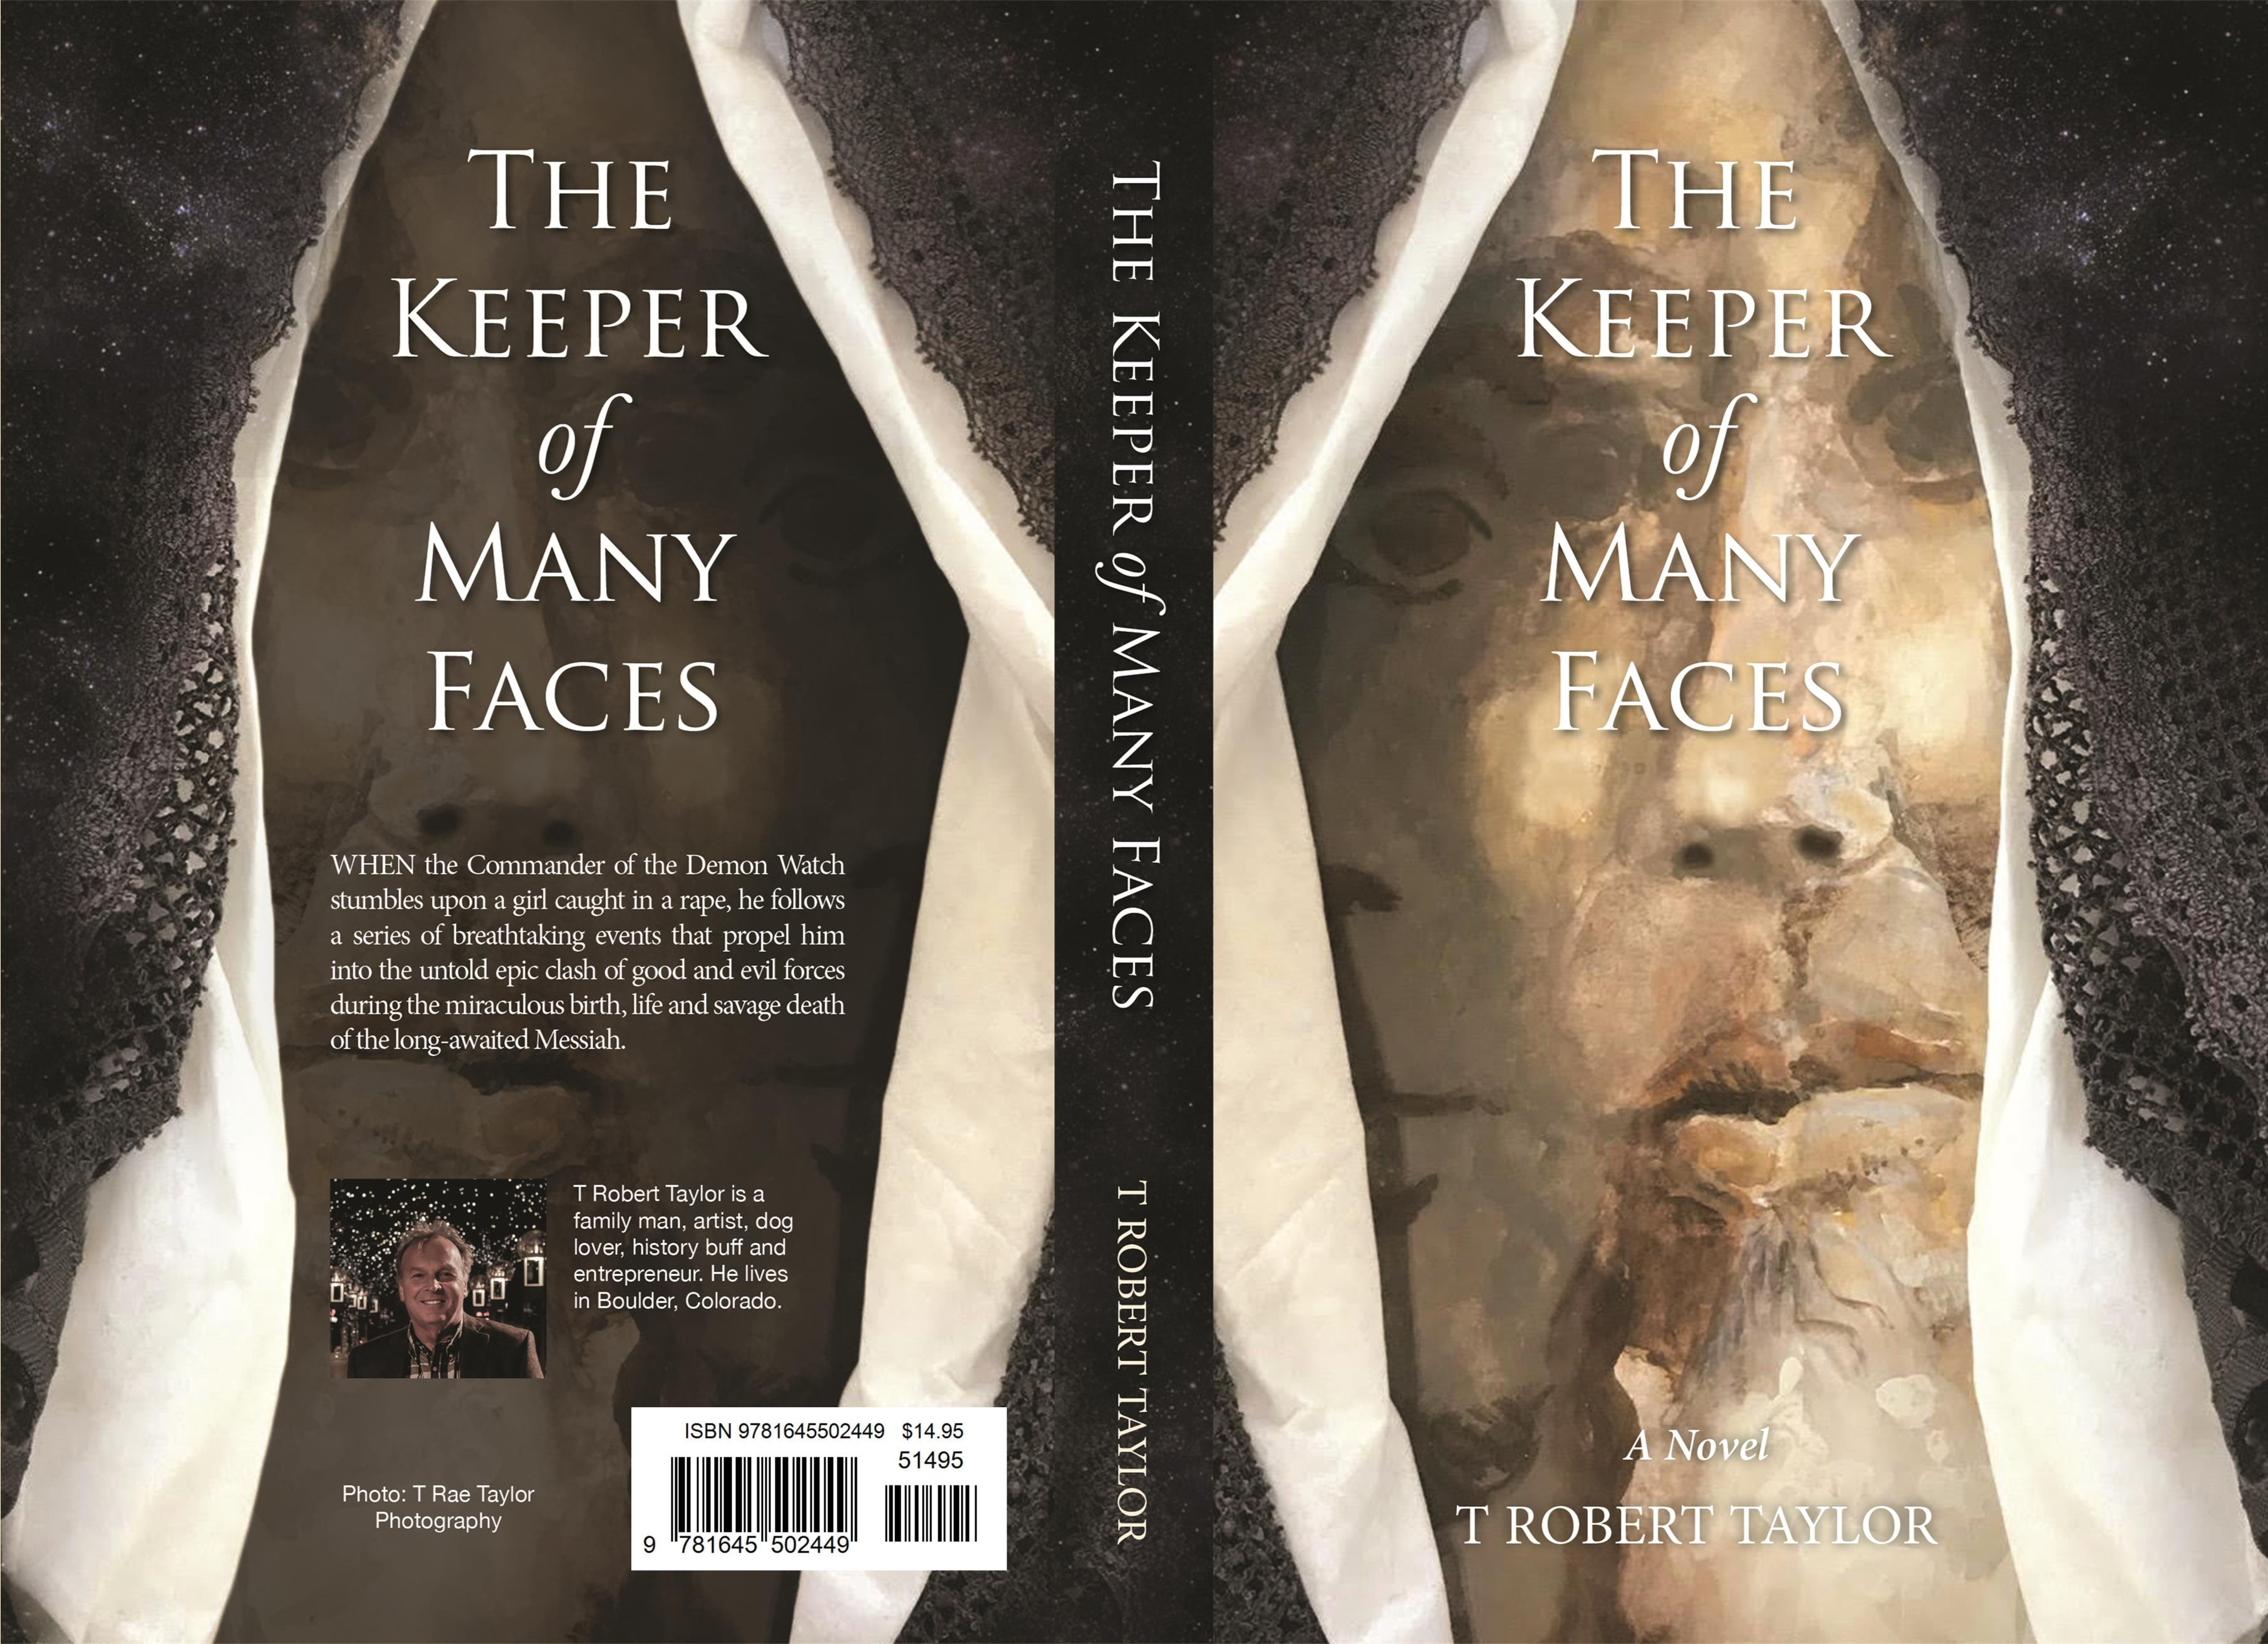 The Keeper of Many Faces cover image